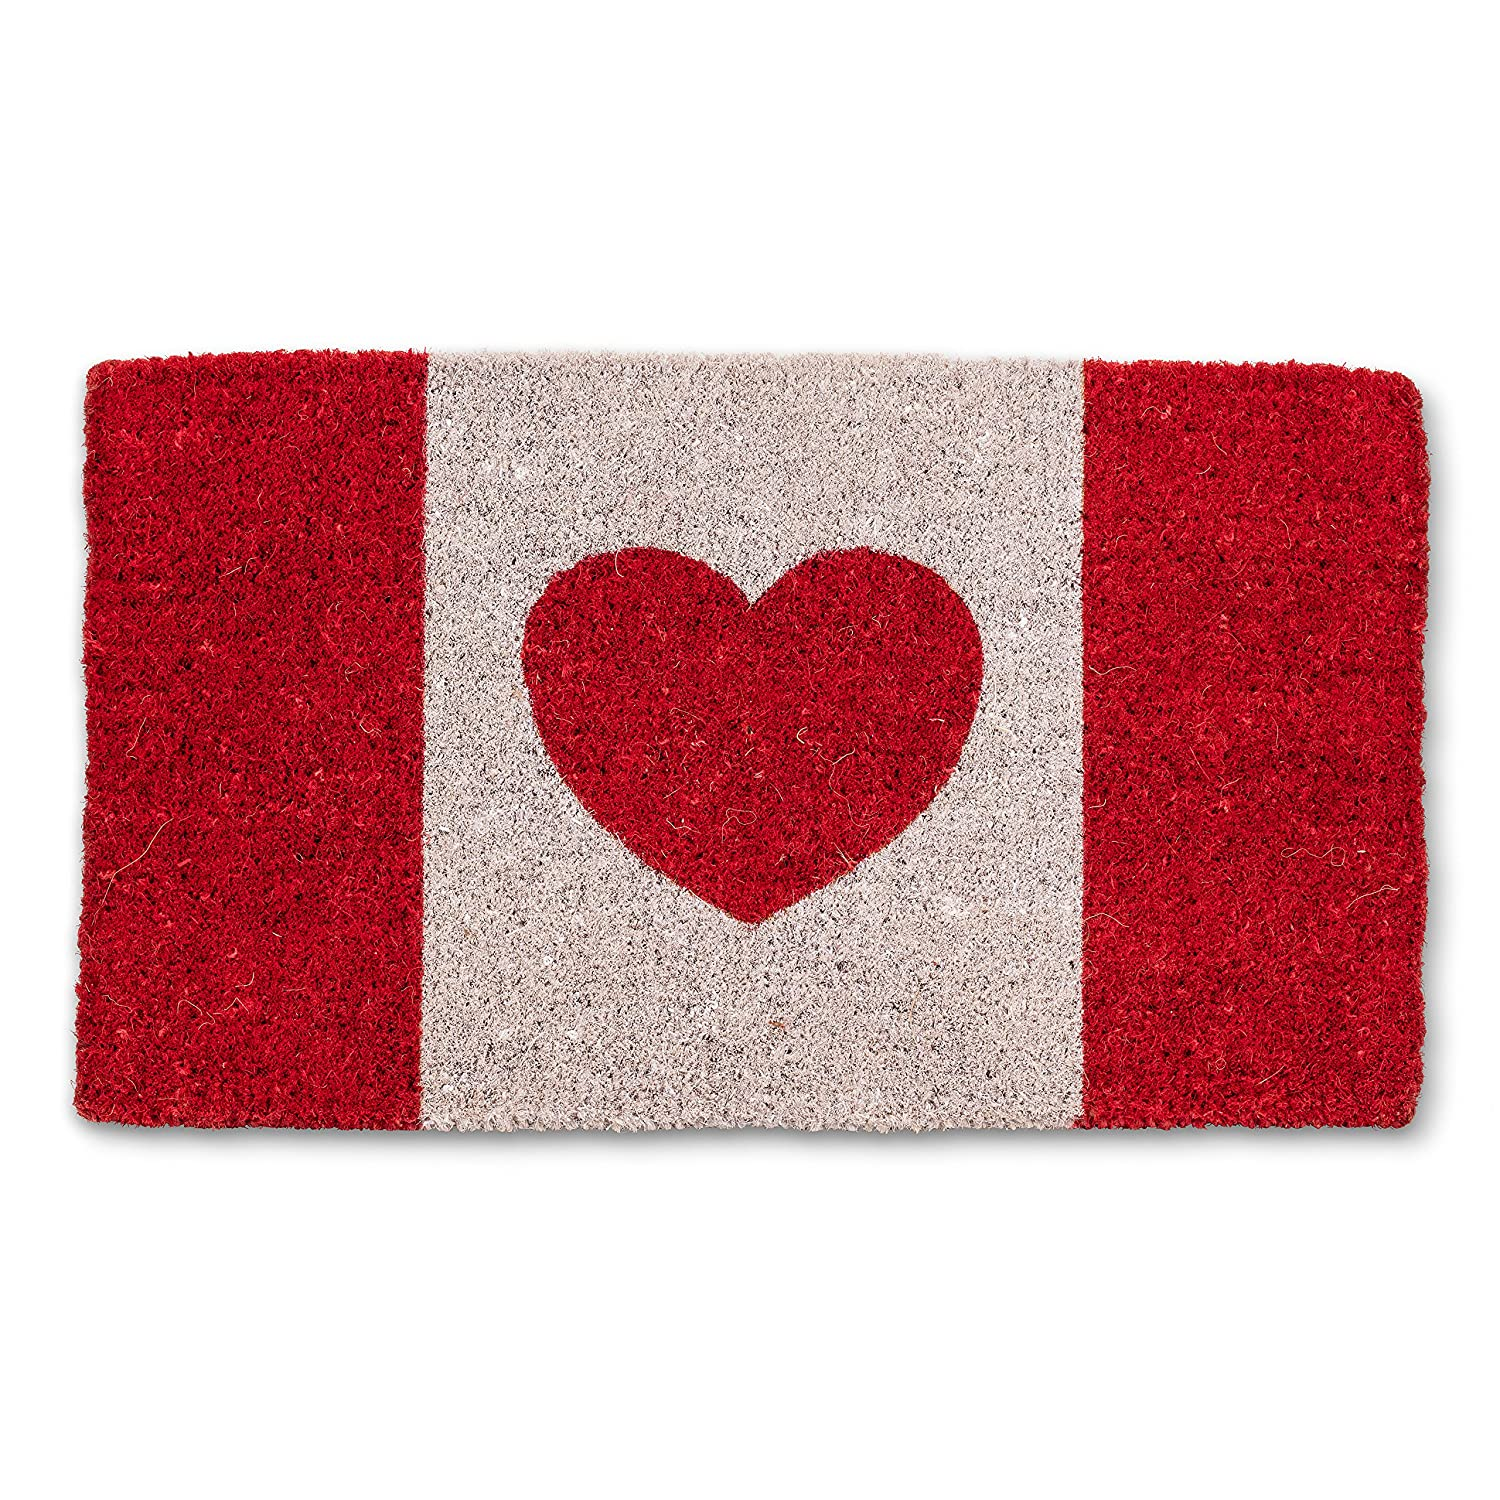 Abbott Collection 35-FWD//GE 7596 Canada Flag with Heart Mat FIBIND